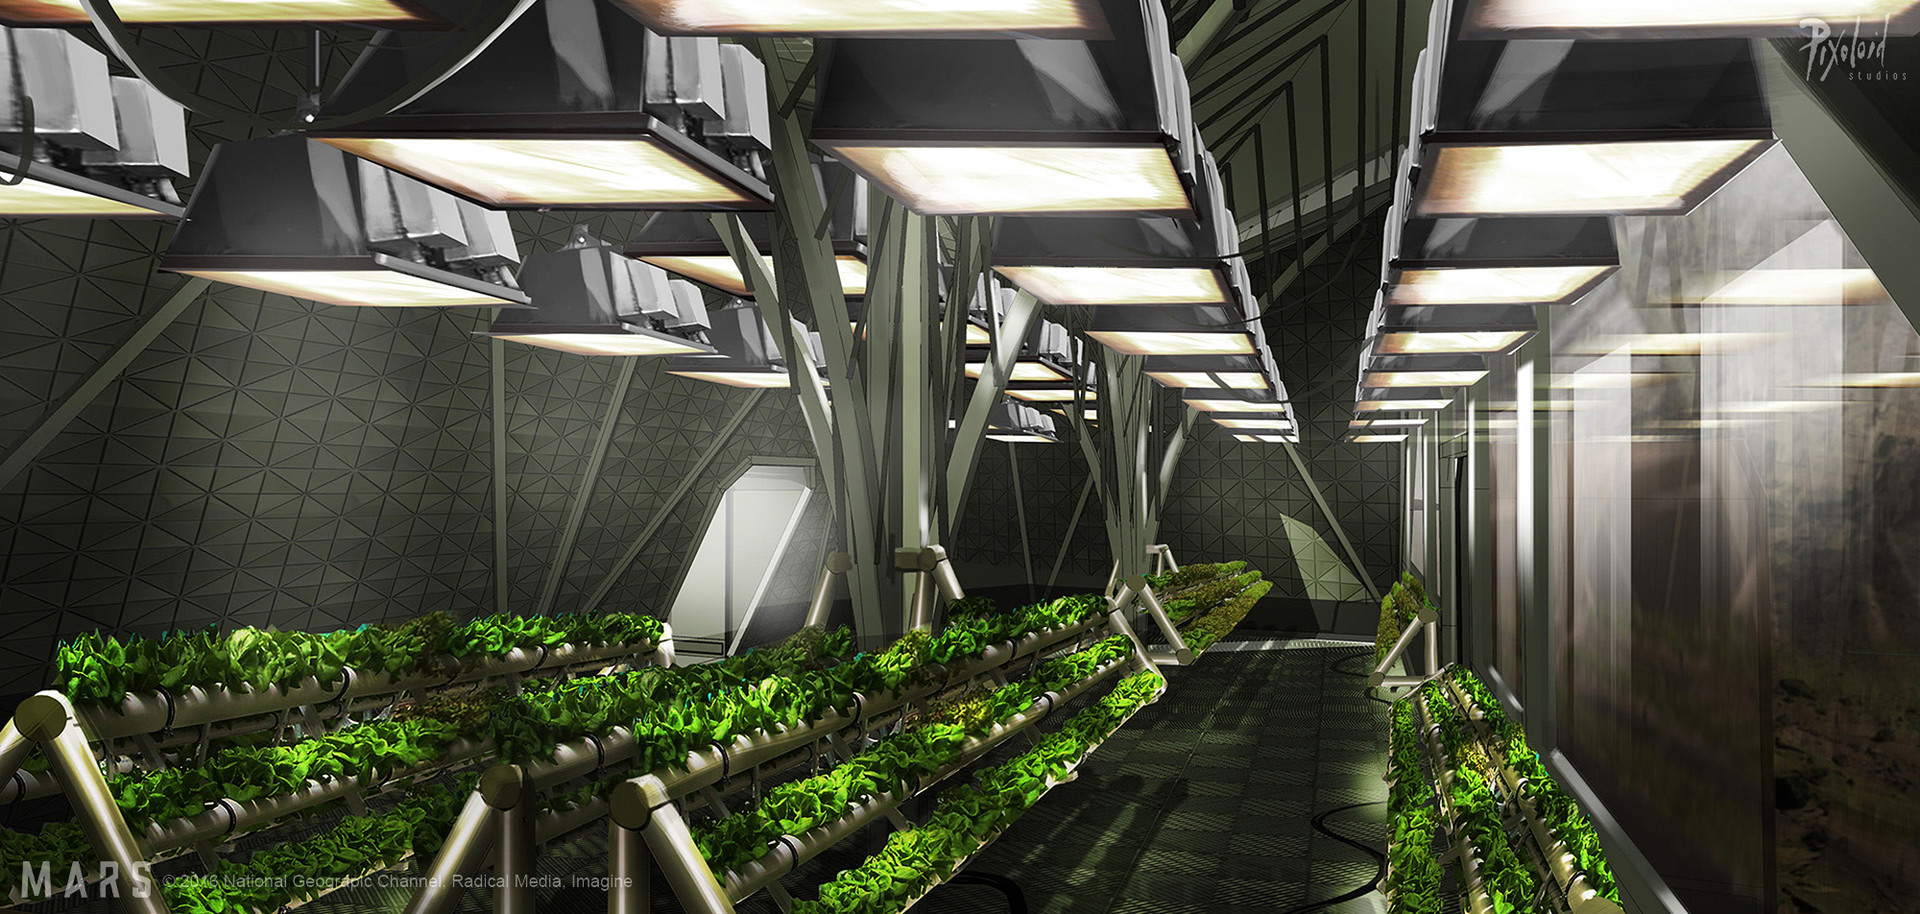 """Image result for """"green house"""" on mars"""